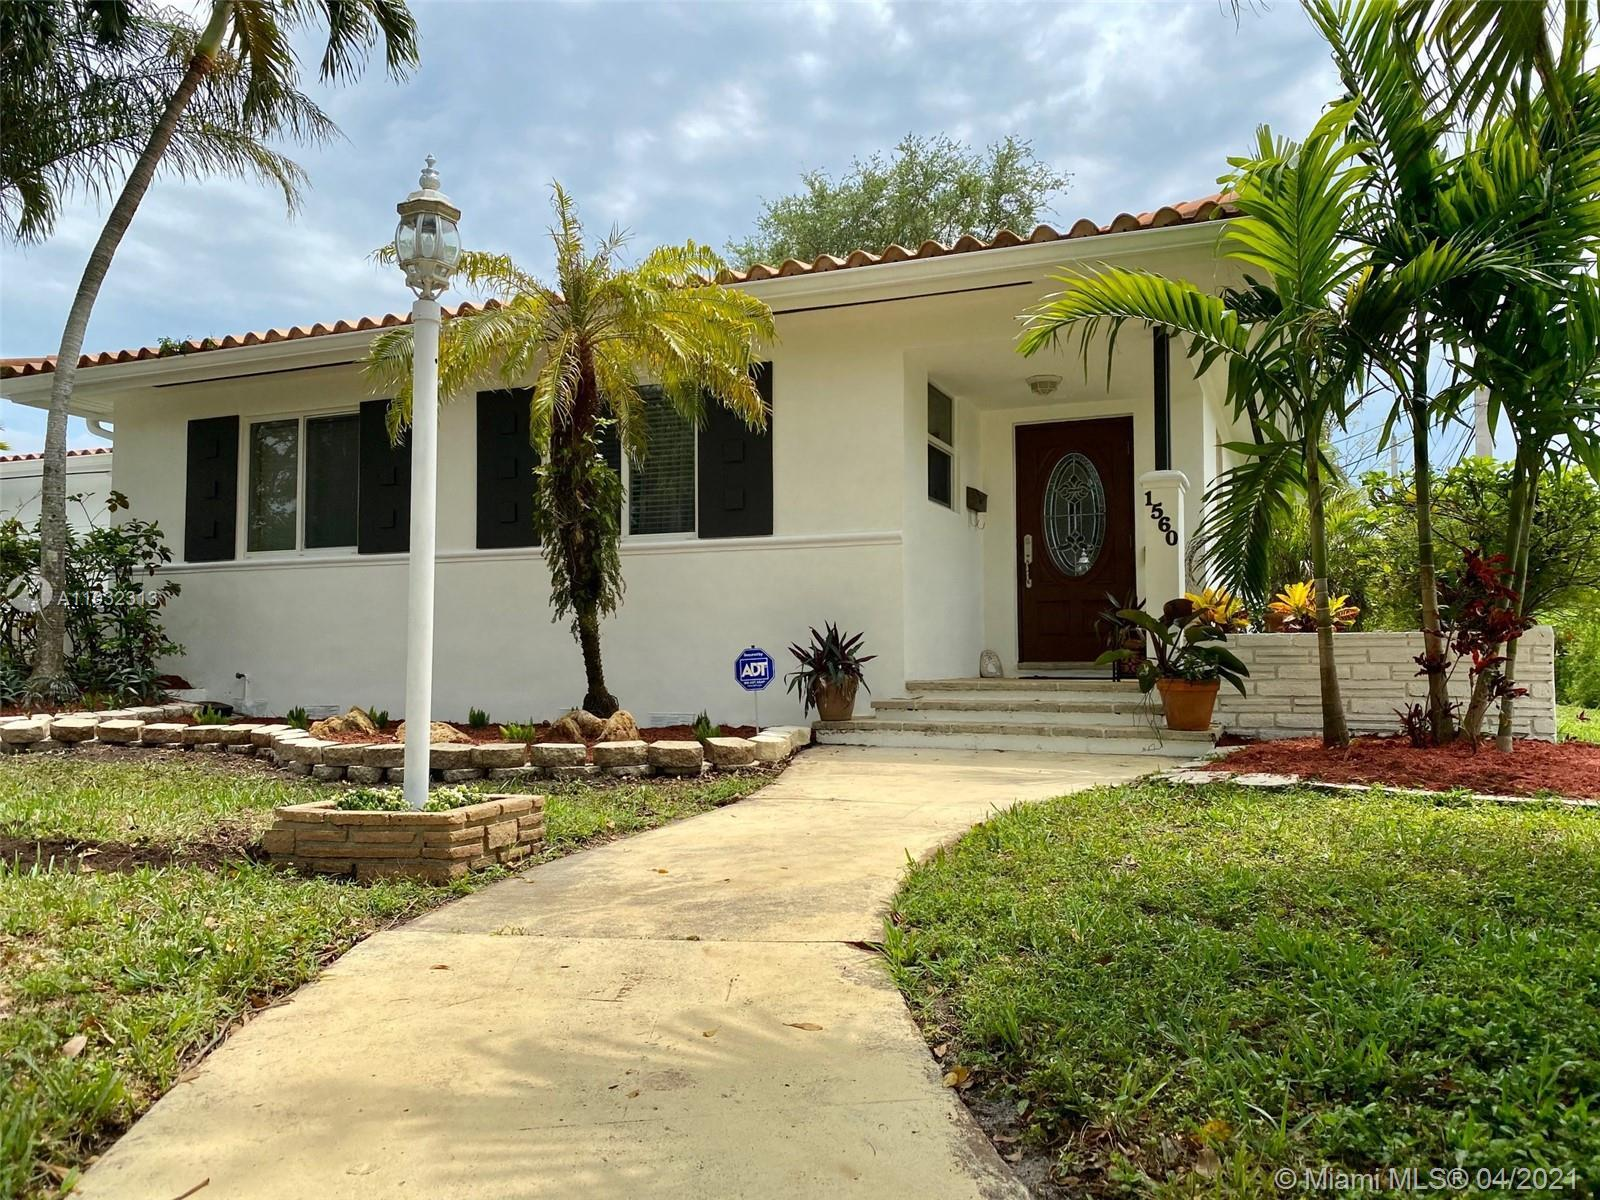 Centrally located three-bedroom two-bathroom Coral Gables home just blocks away from Saint Theresa C